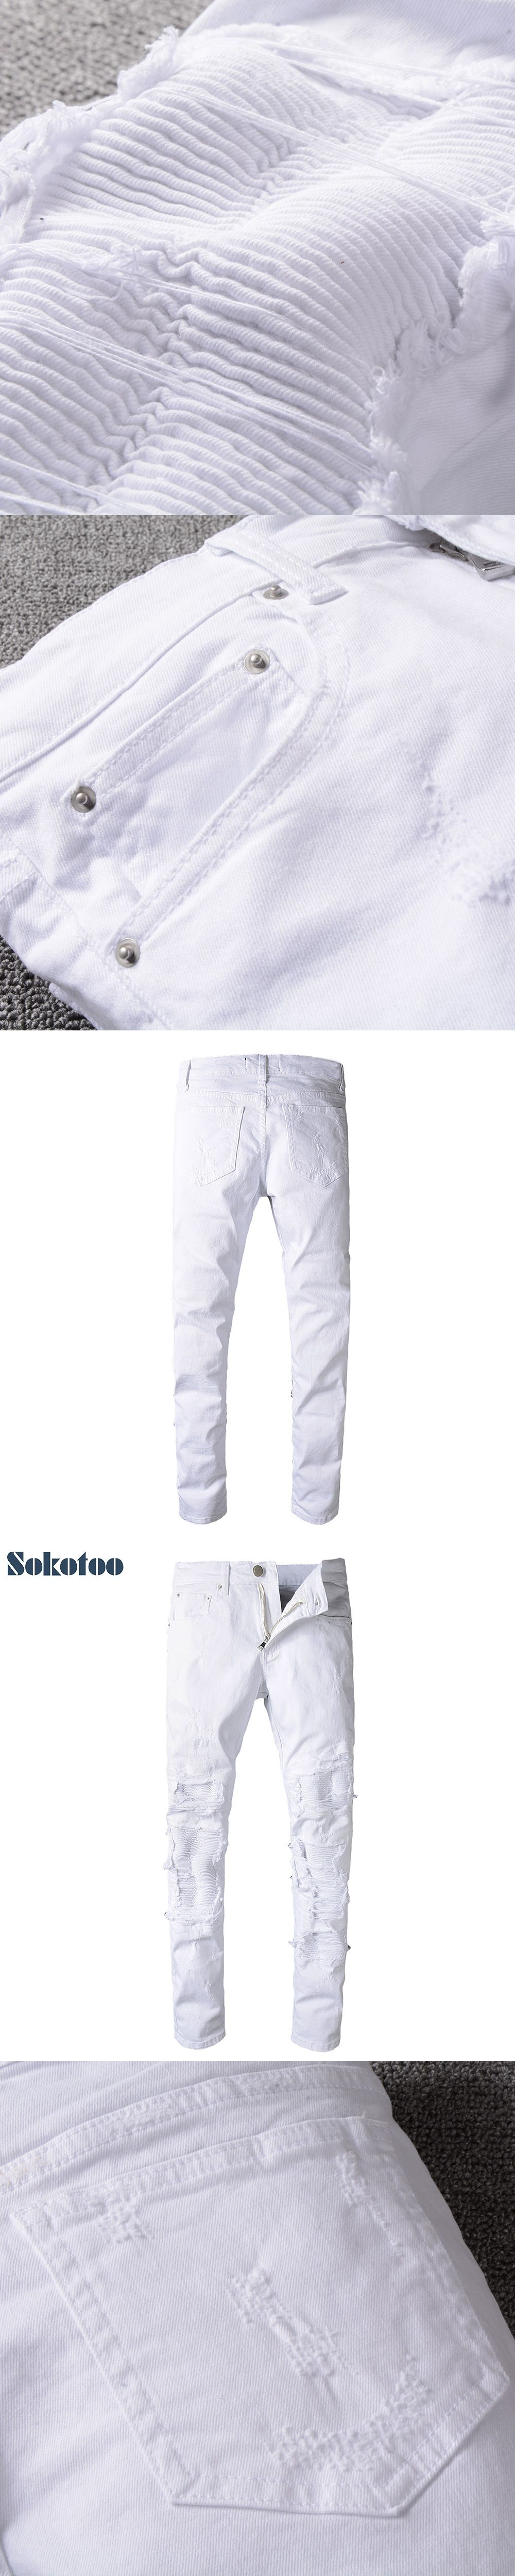 83eac7ba616 Sokotoo Men s white pleated ripped skinny biker jeans for moto Casual  patchwork stretch denim pants Long